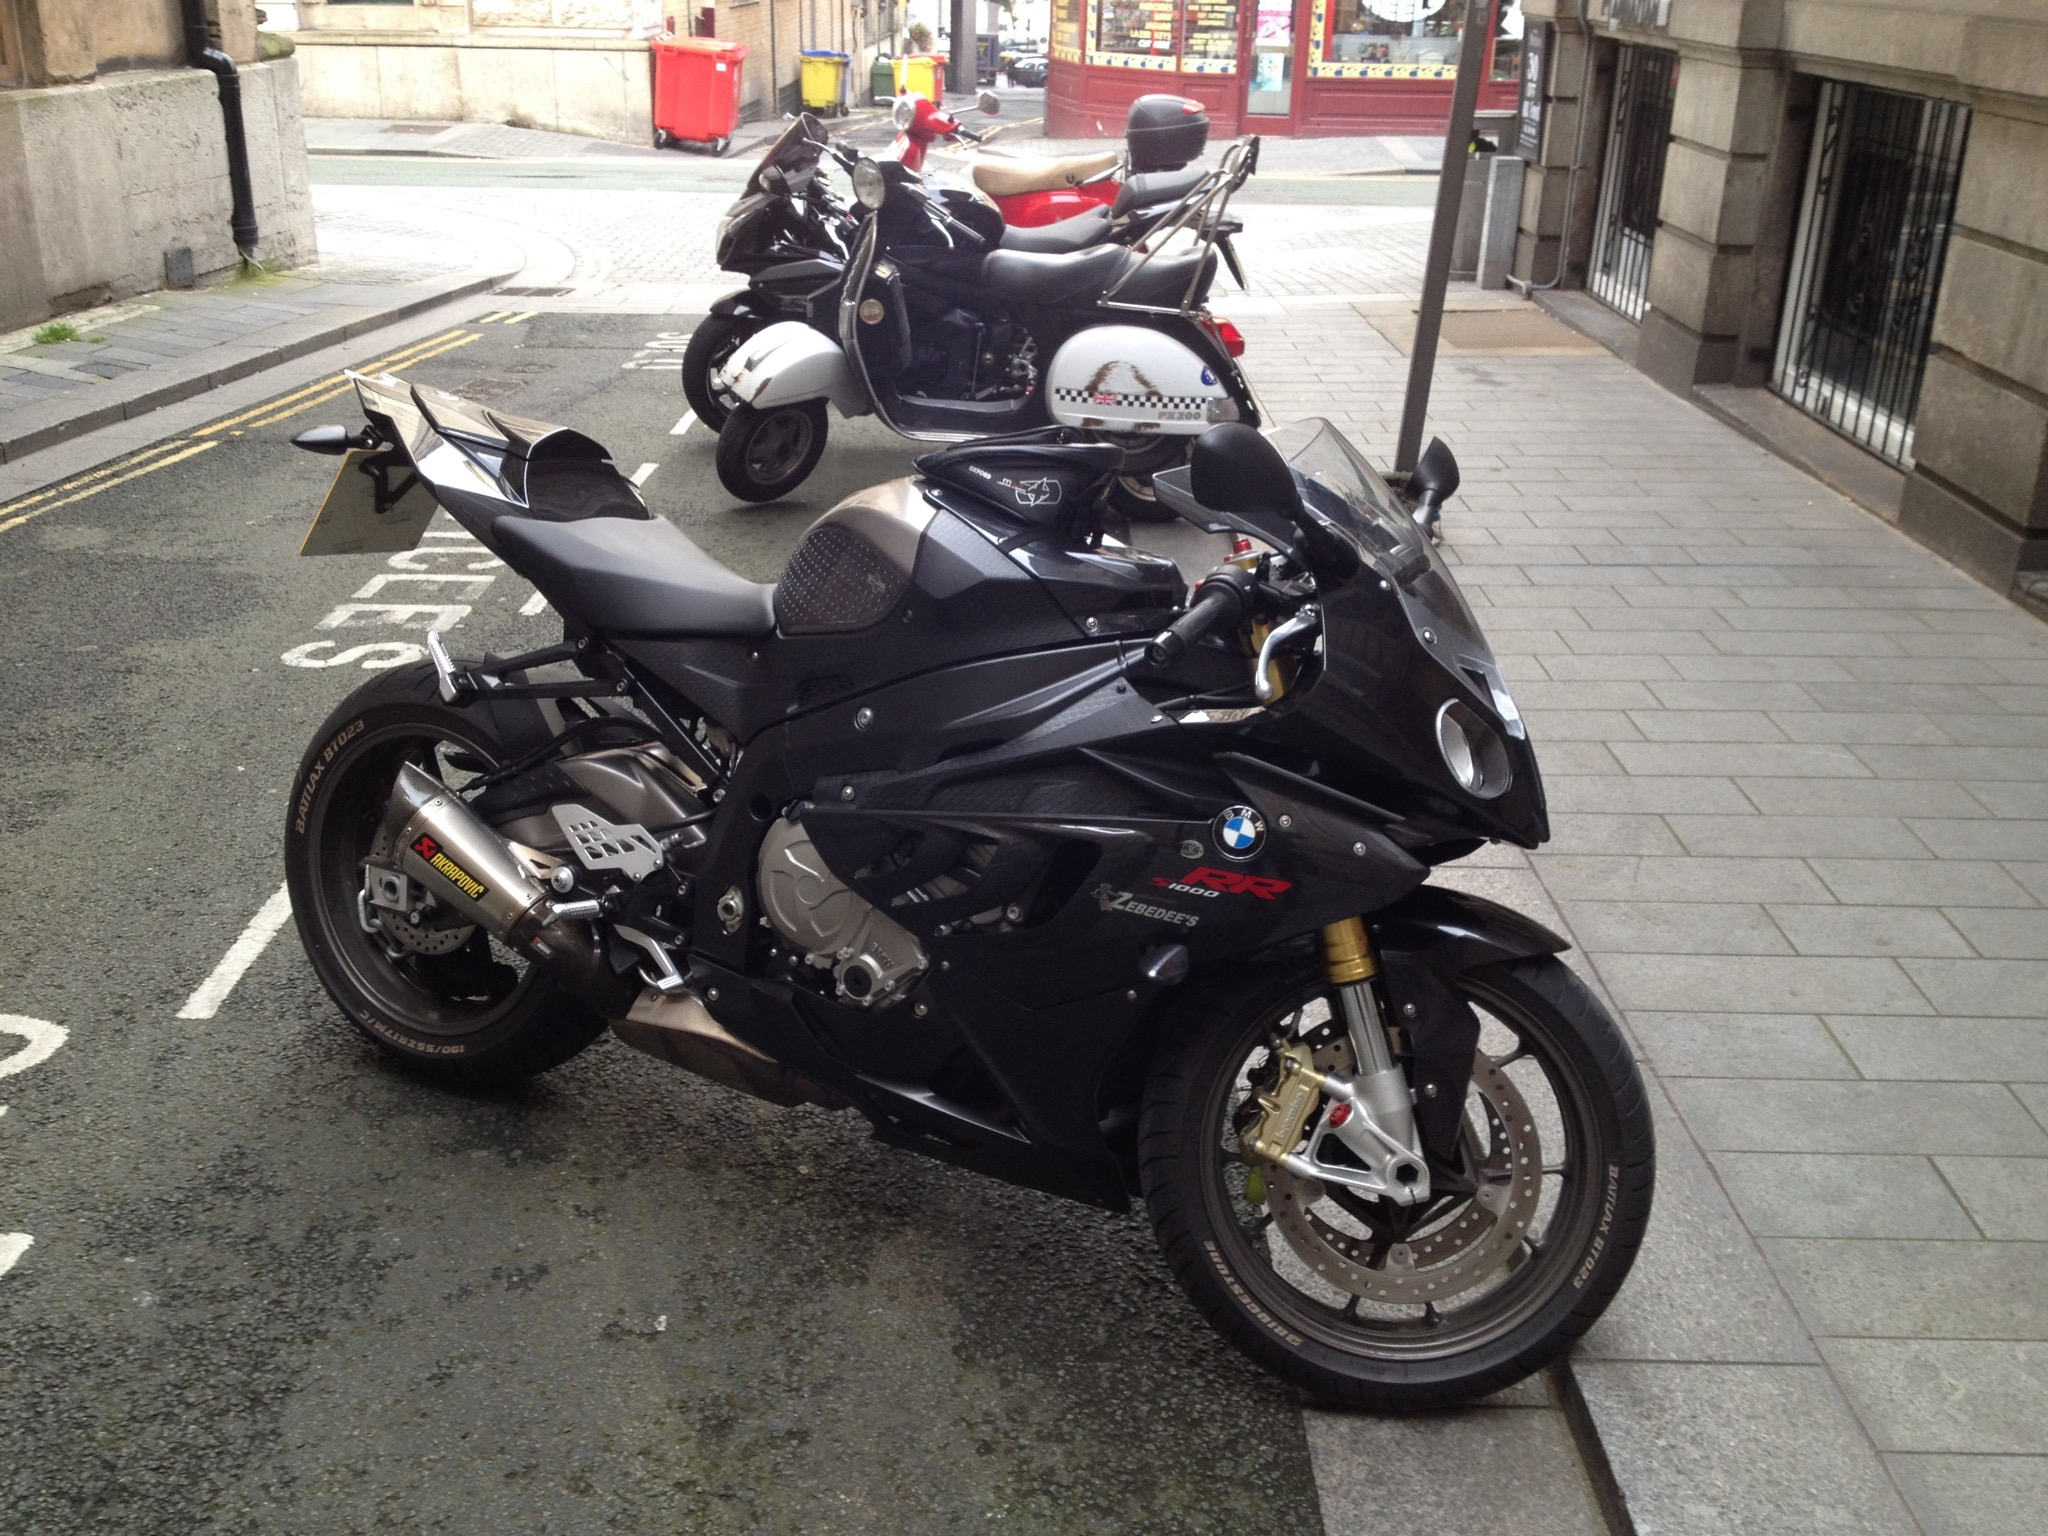 Jay Brown – BMW S1000RR